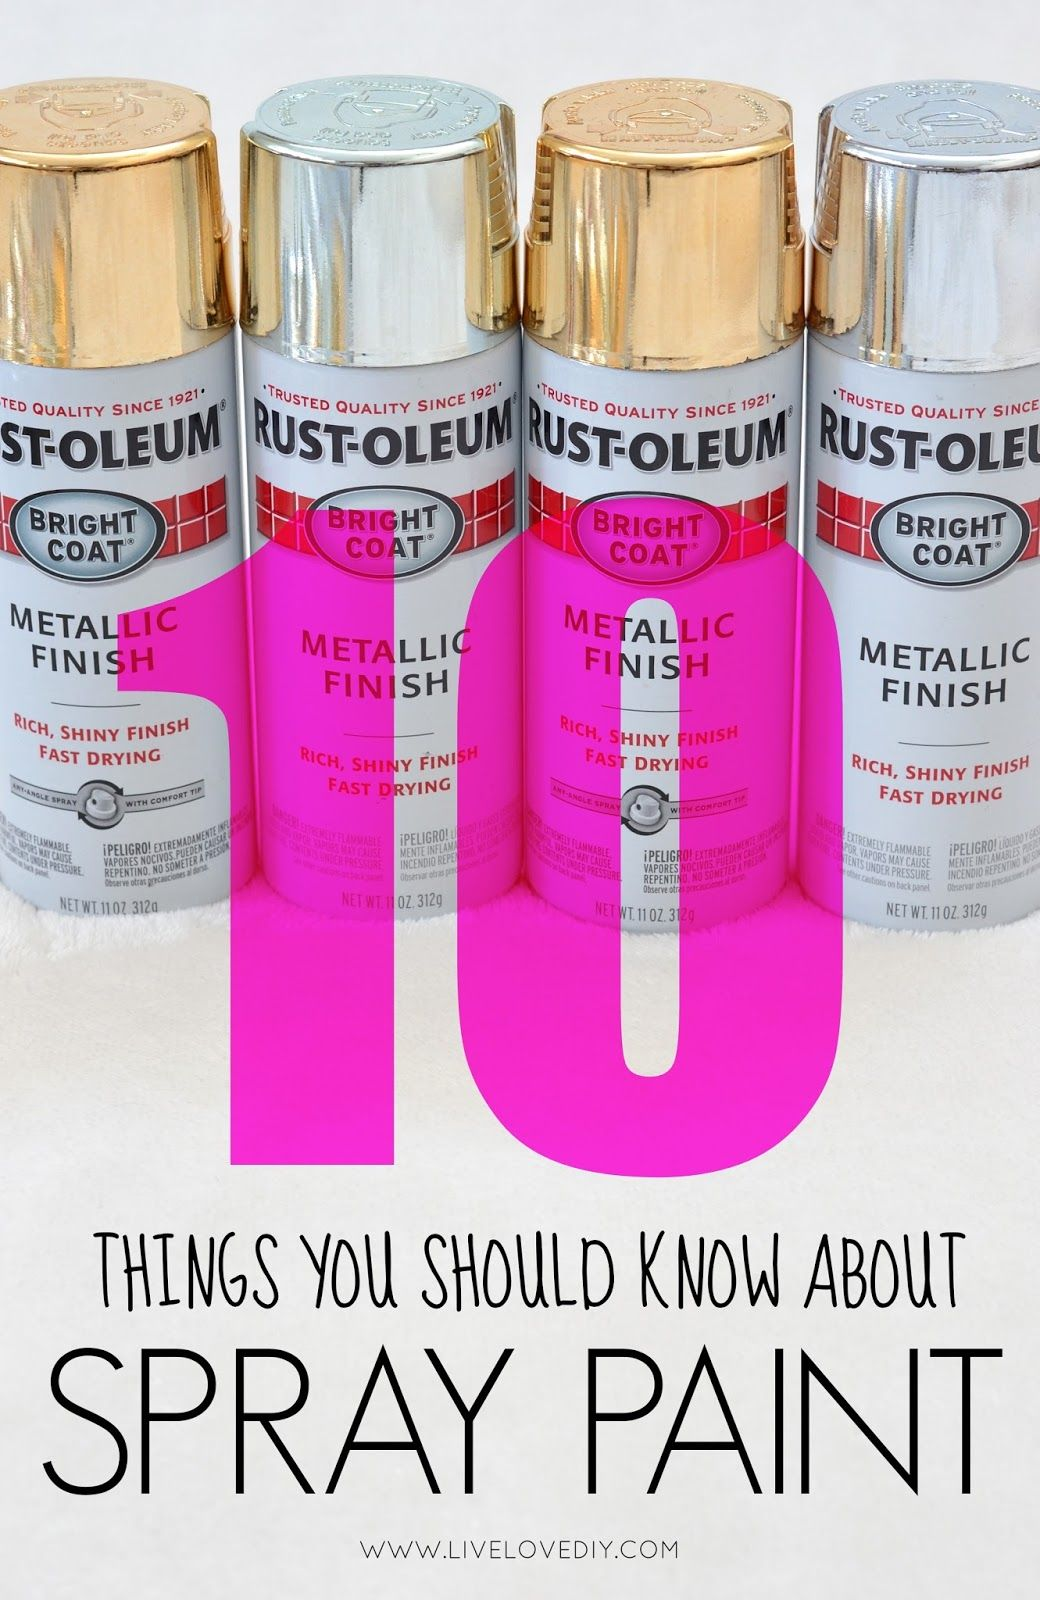 10 Things You Should Know About Spray Paint (LiveLoveDIY